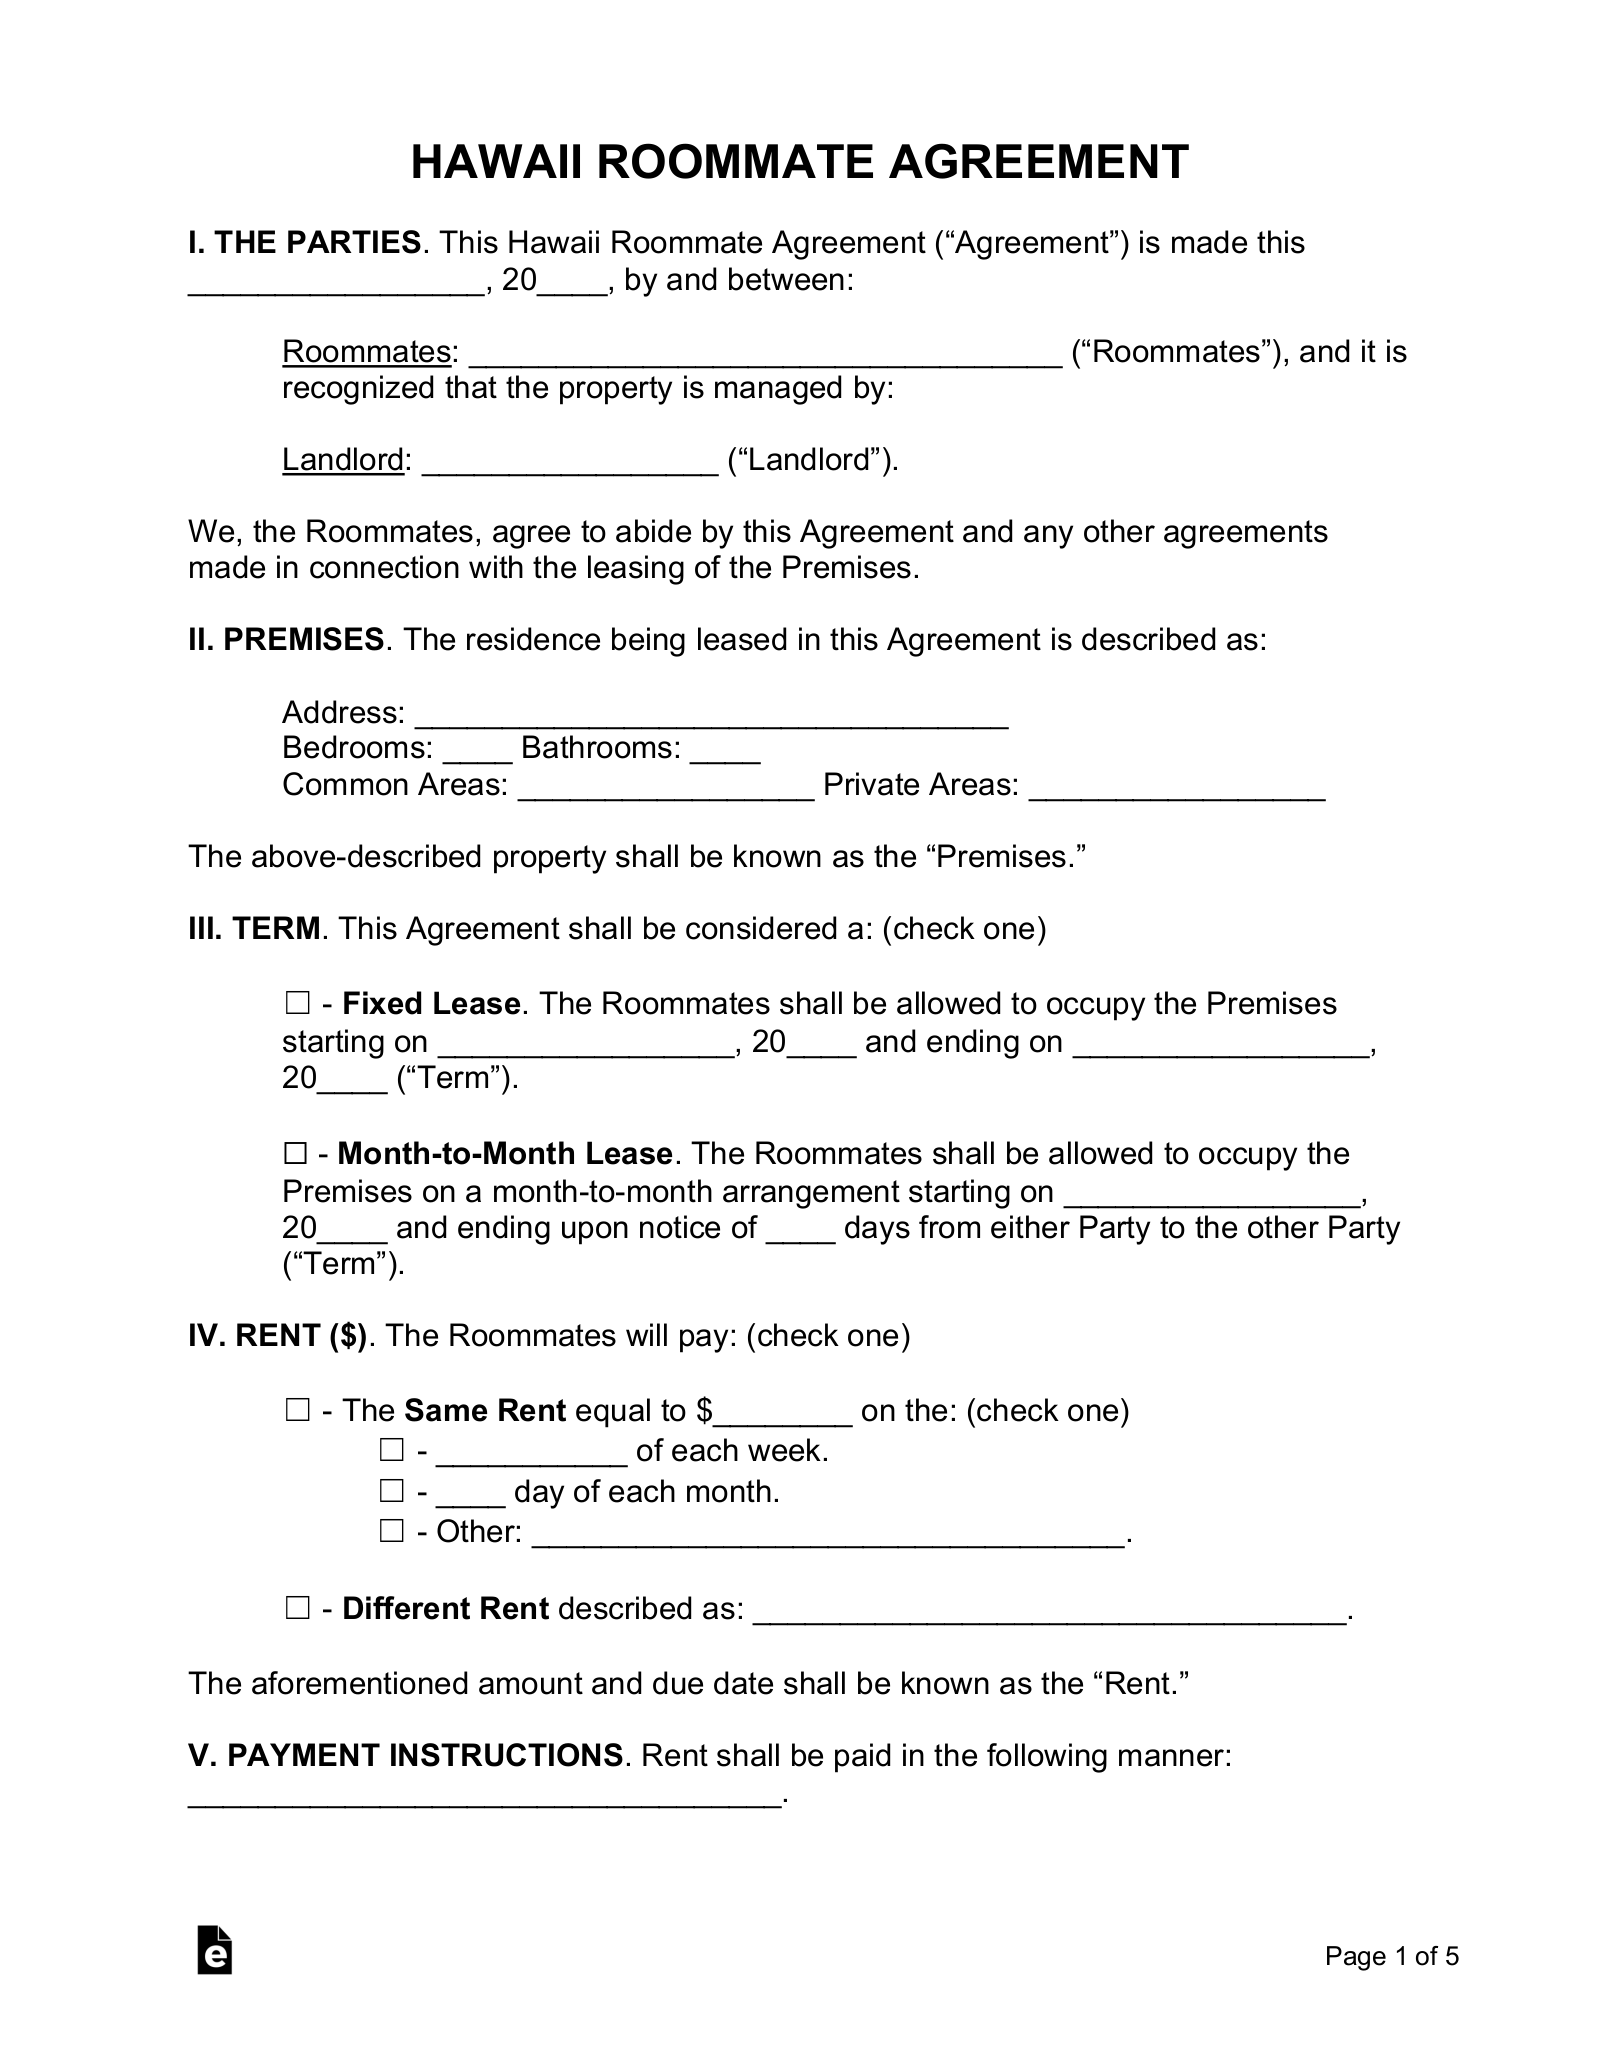 Free Hawaii Roommate Room Rental Agreement Form Pdf